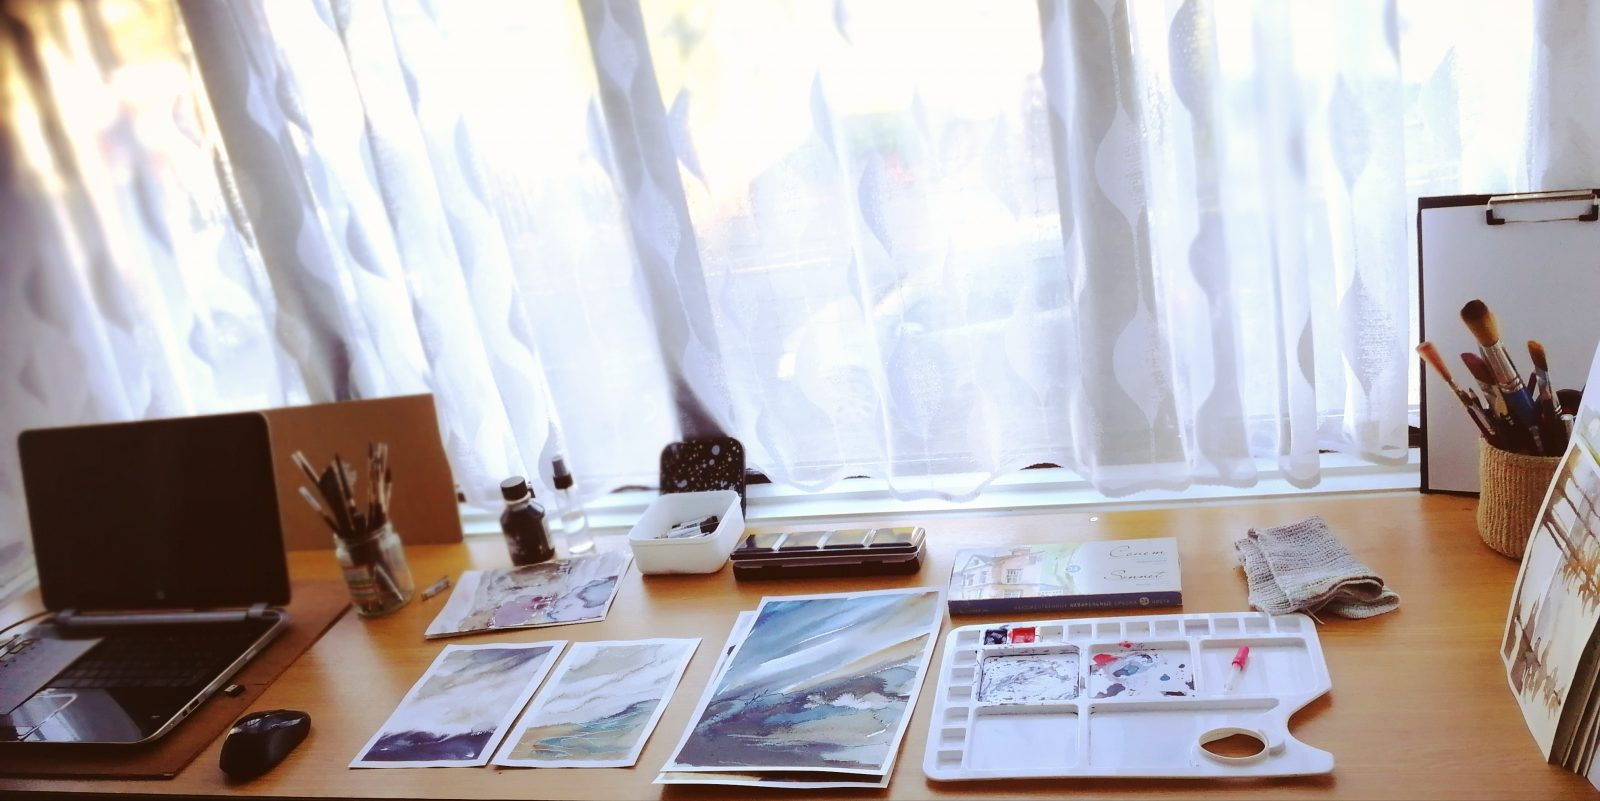 Home studio tour, work space next to the window. Creating art during pregnancy and maternity